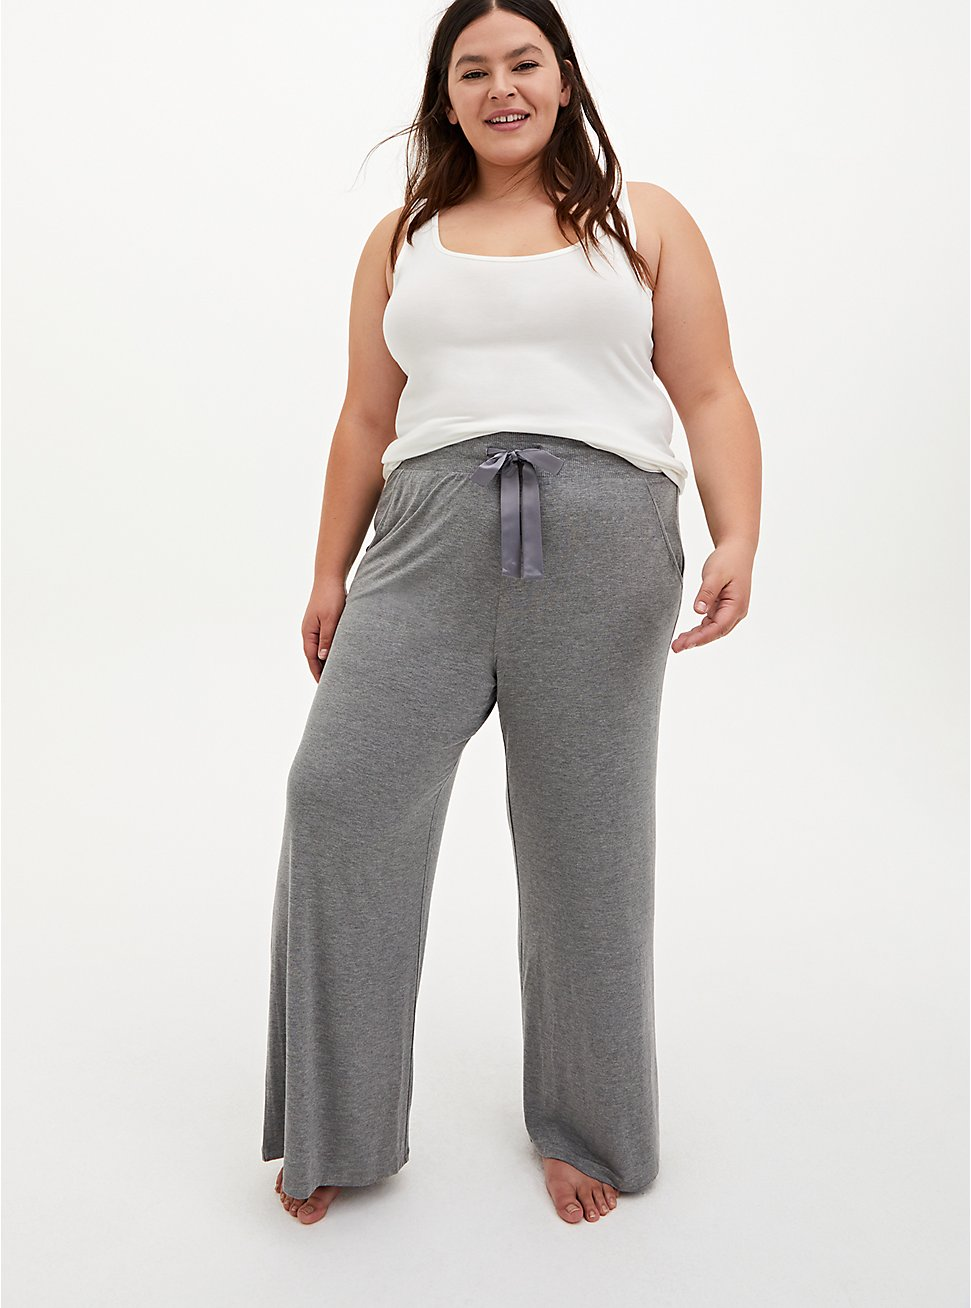 Super Soft Heather Grey Wide Leg Drawstring Sleep Pant, GREY, hi-res